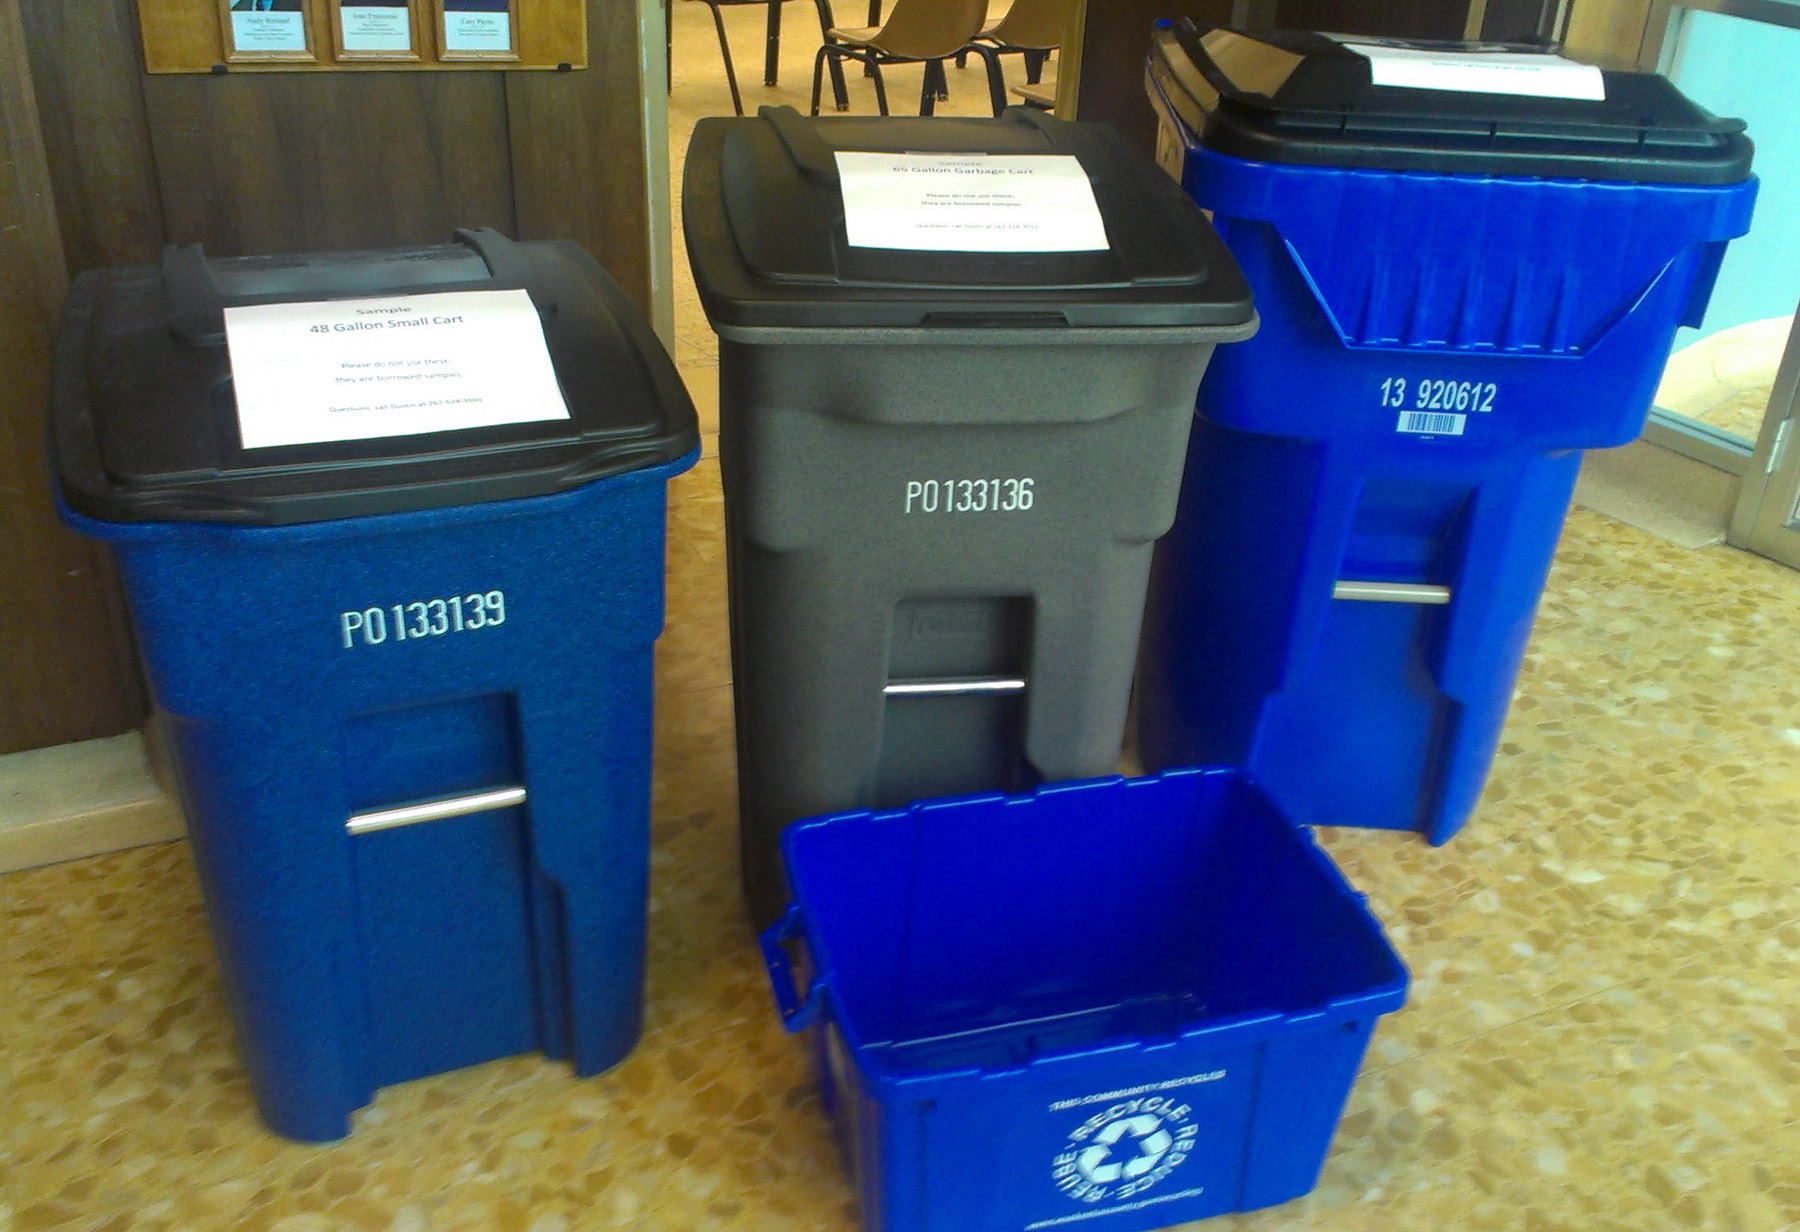 City Of Waukesha Reaches Out To Residents On New Garbage Recycling System